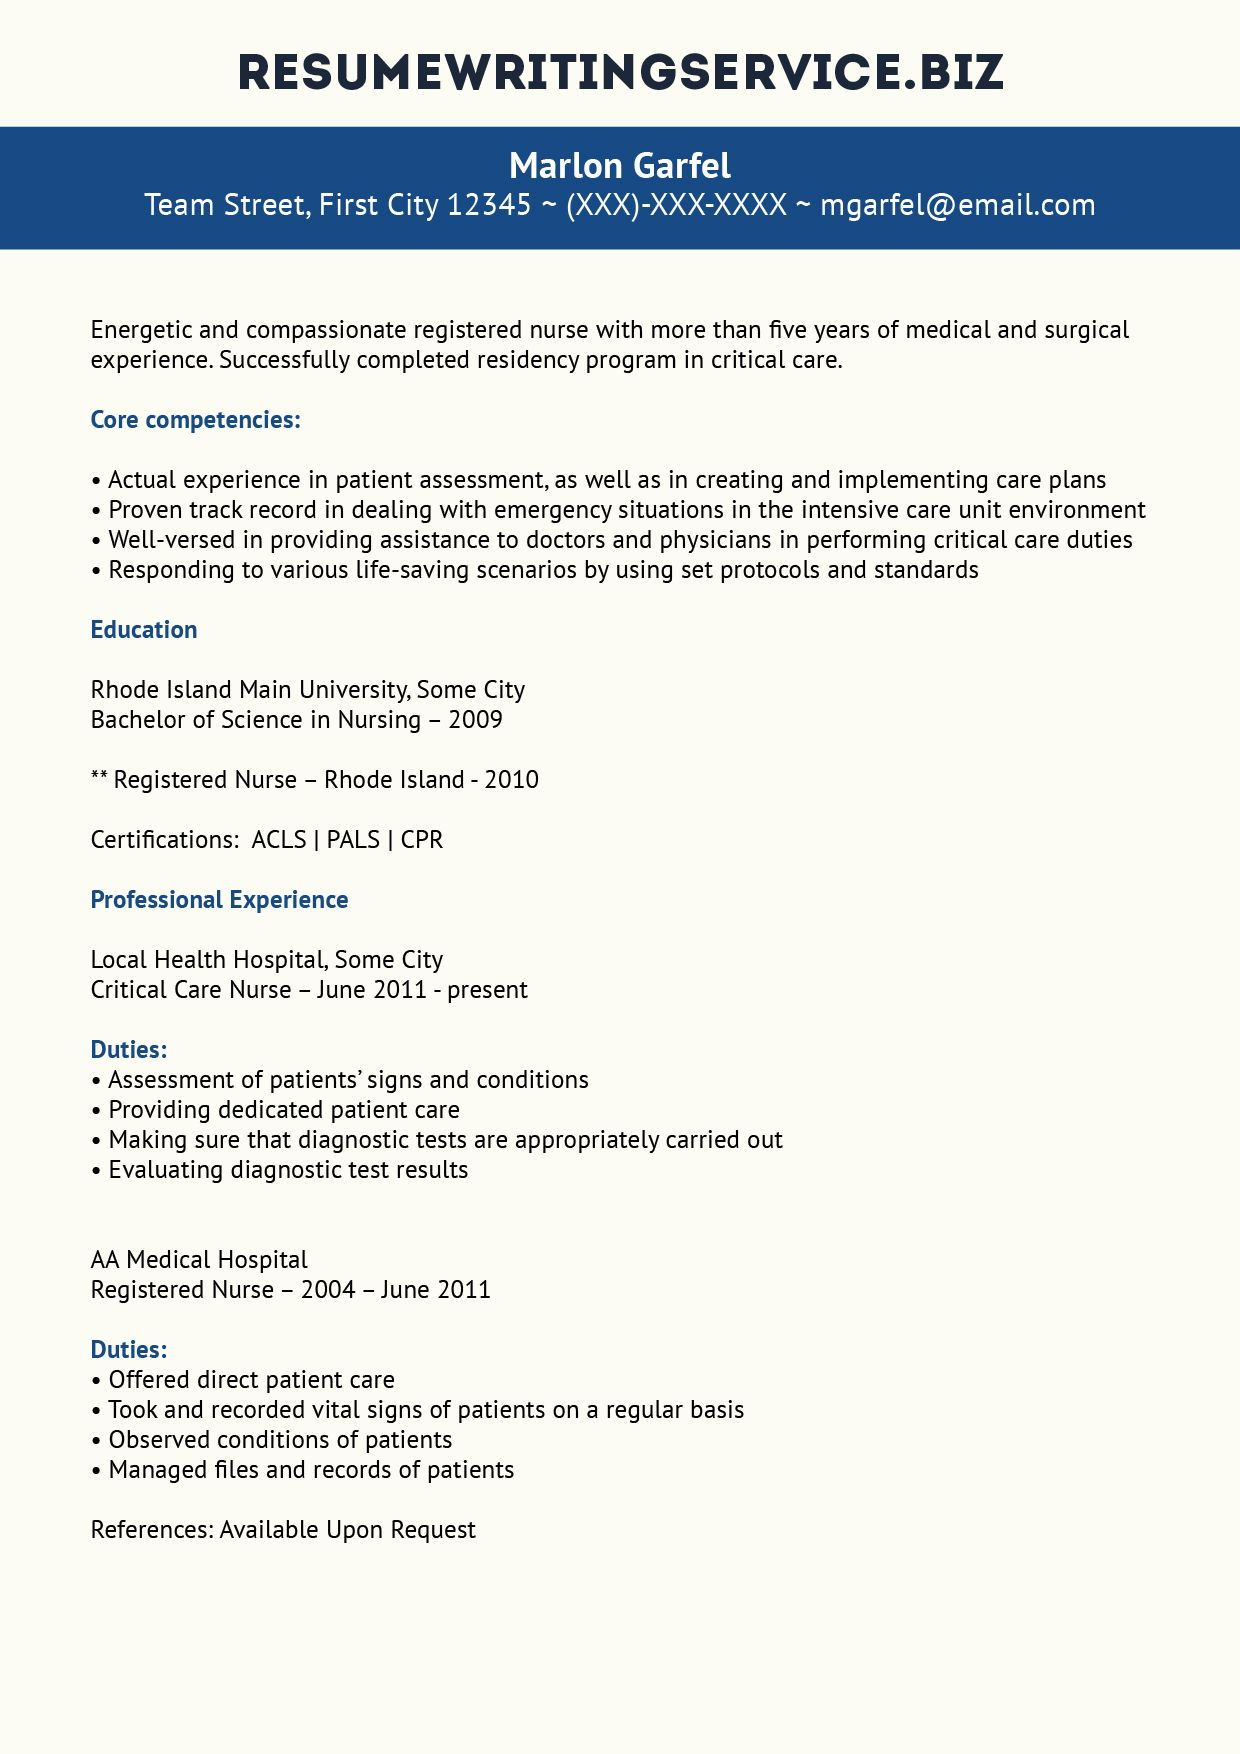 Critical Care Nurse Resume Sample | Student/Career | Nursing resume ...